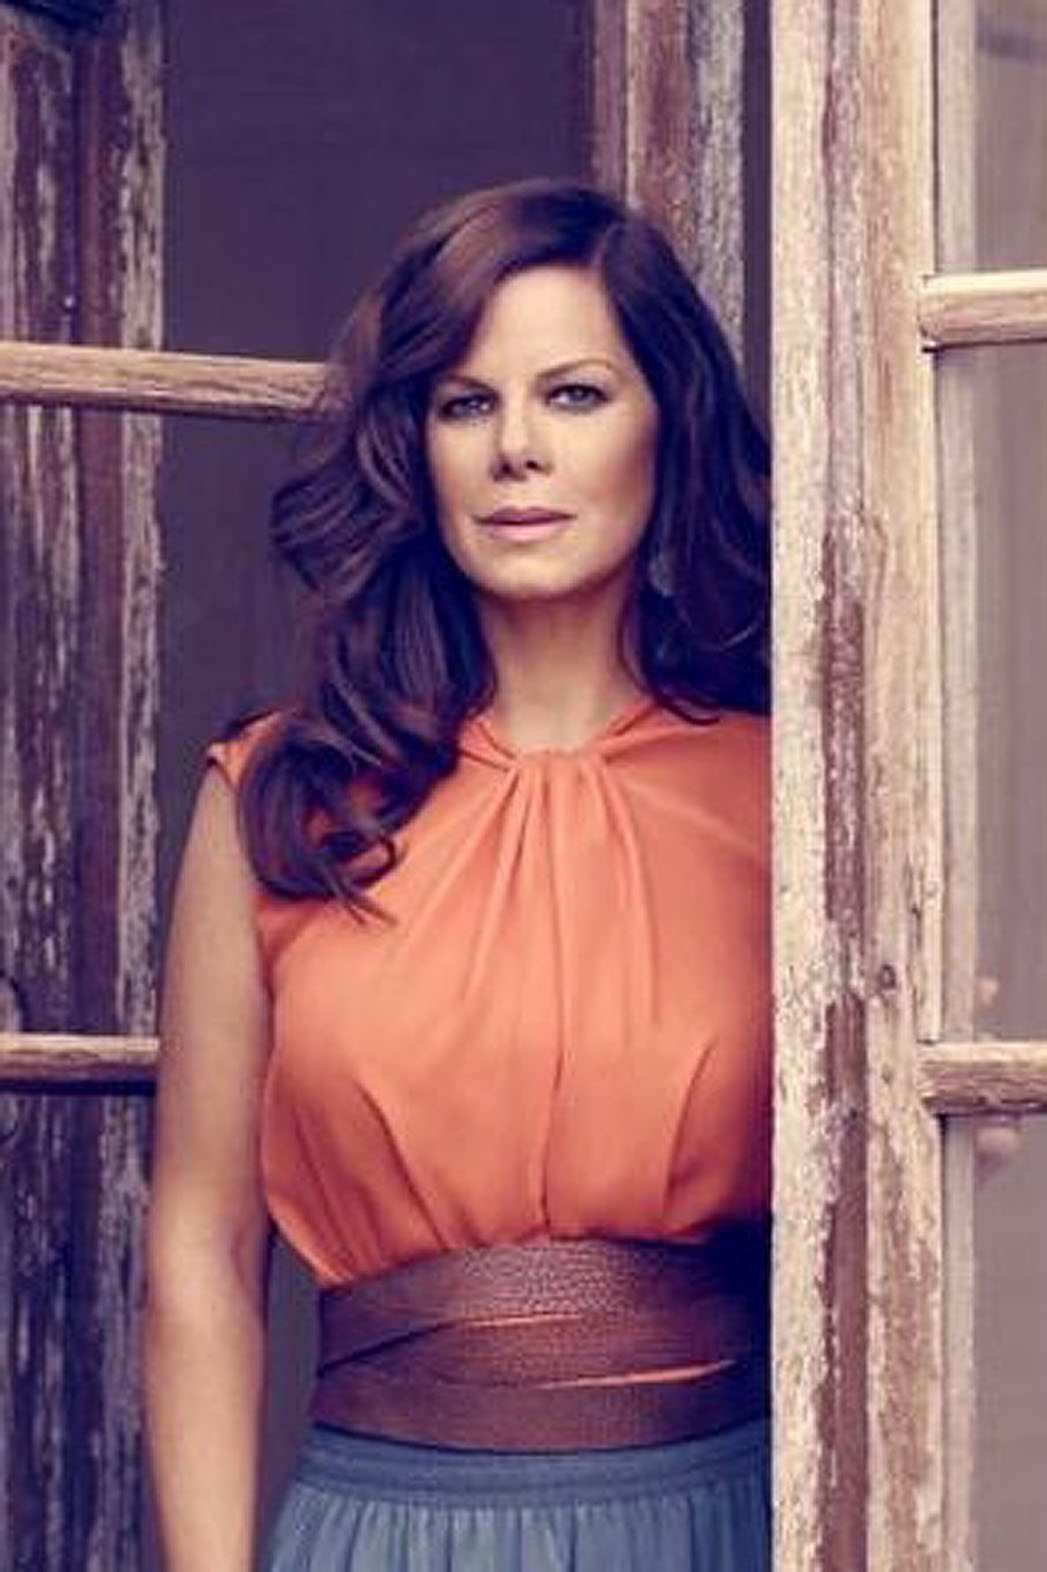 from Damian marcia gay harden measurements